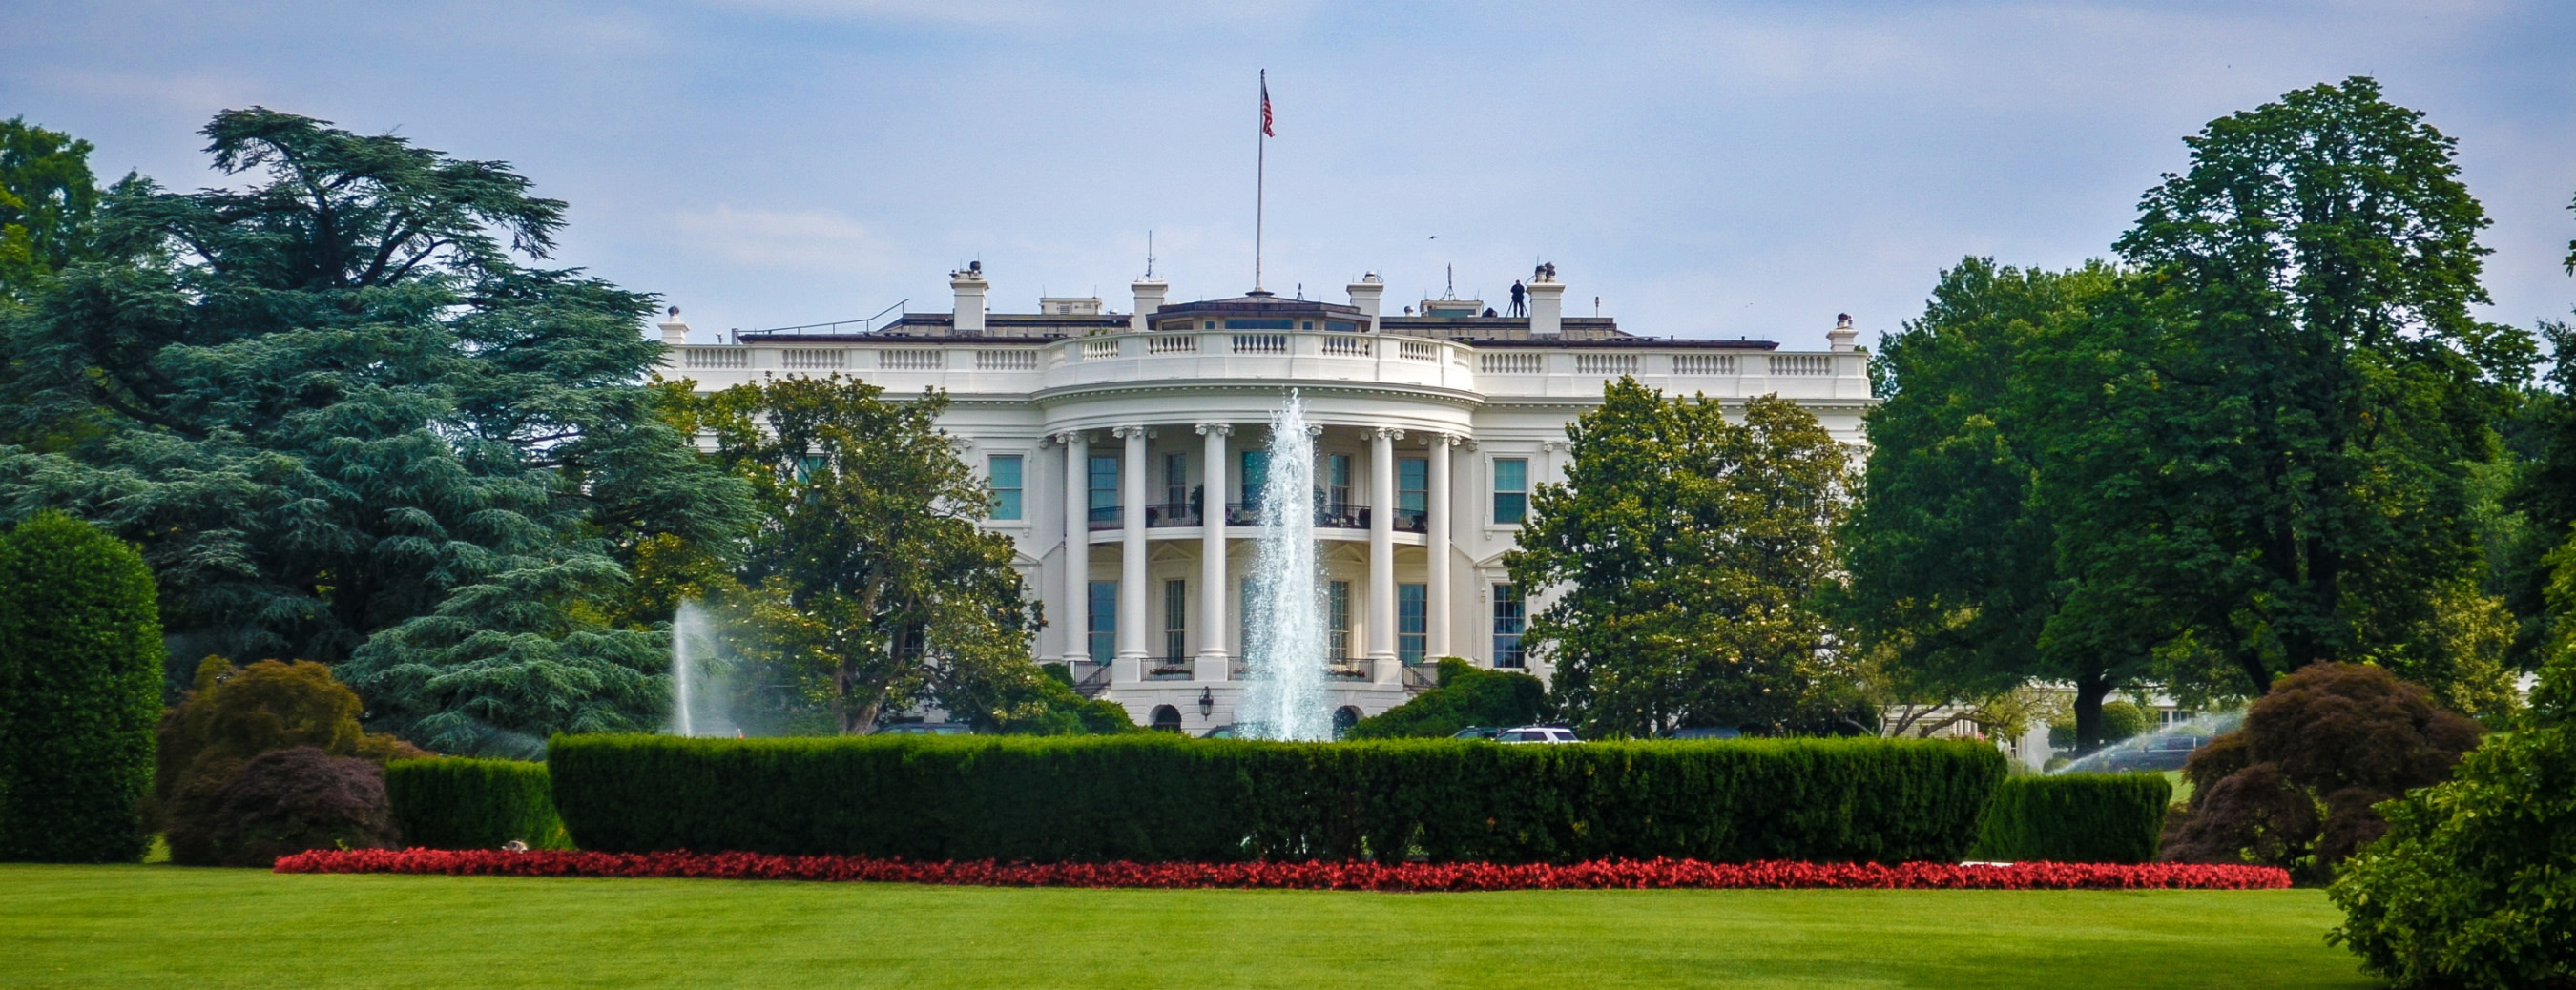 White house image - Election scenarios blog